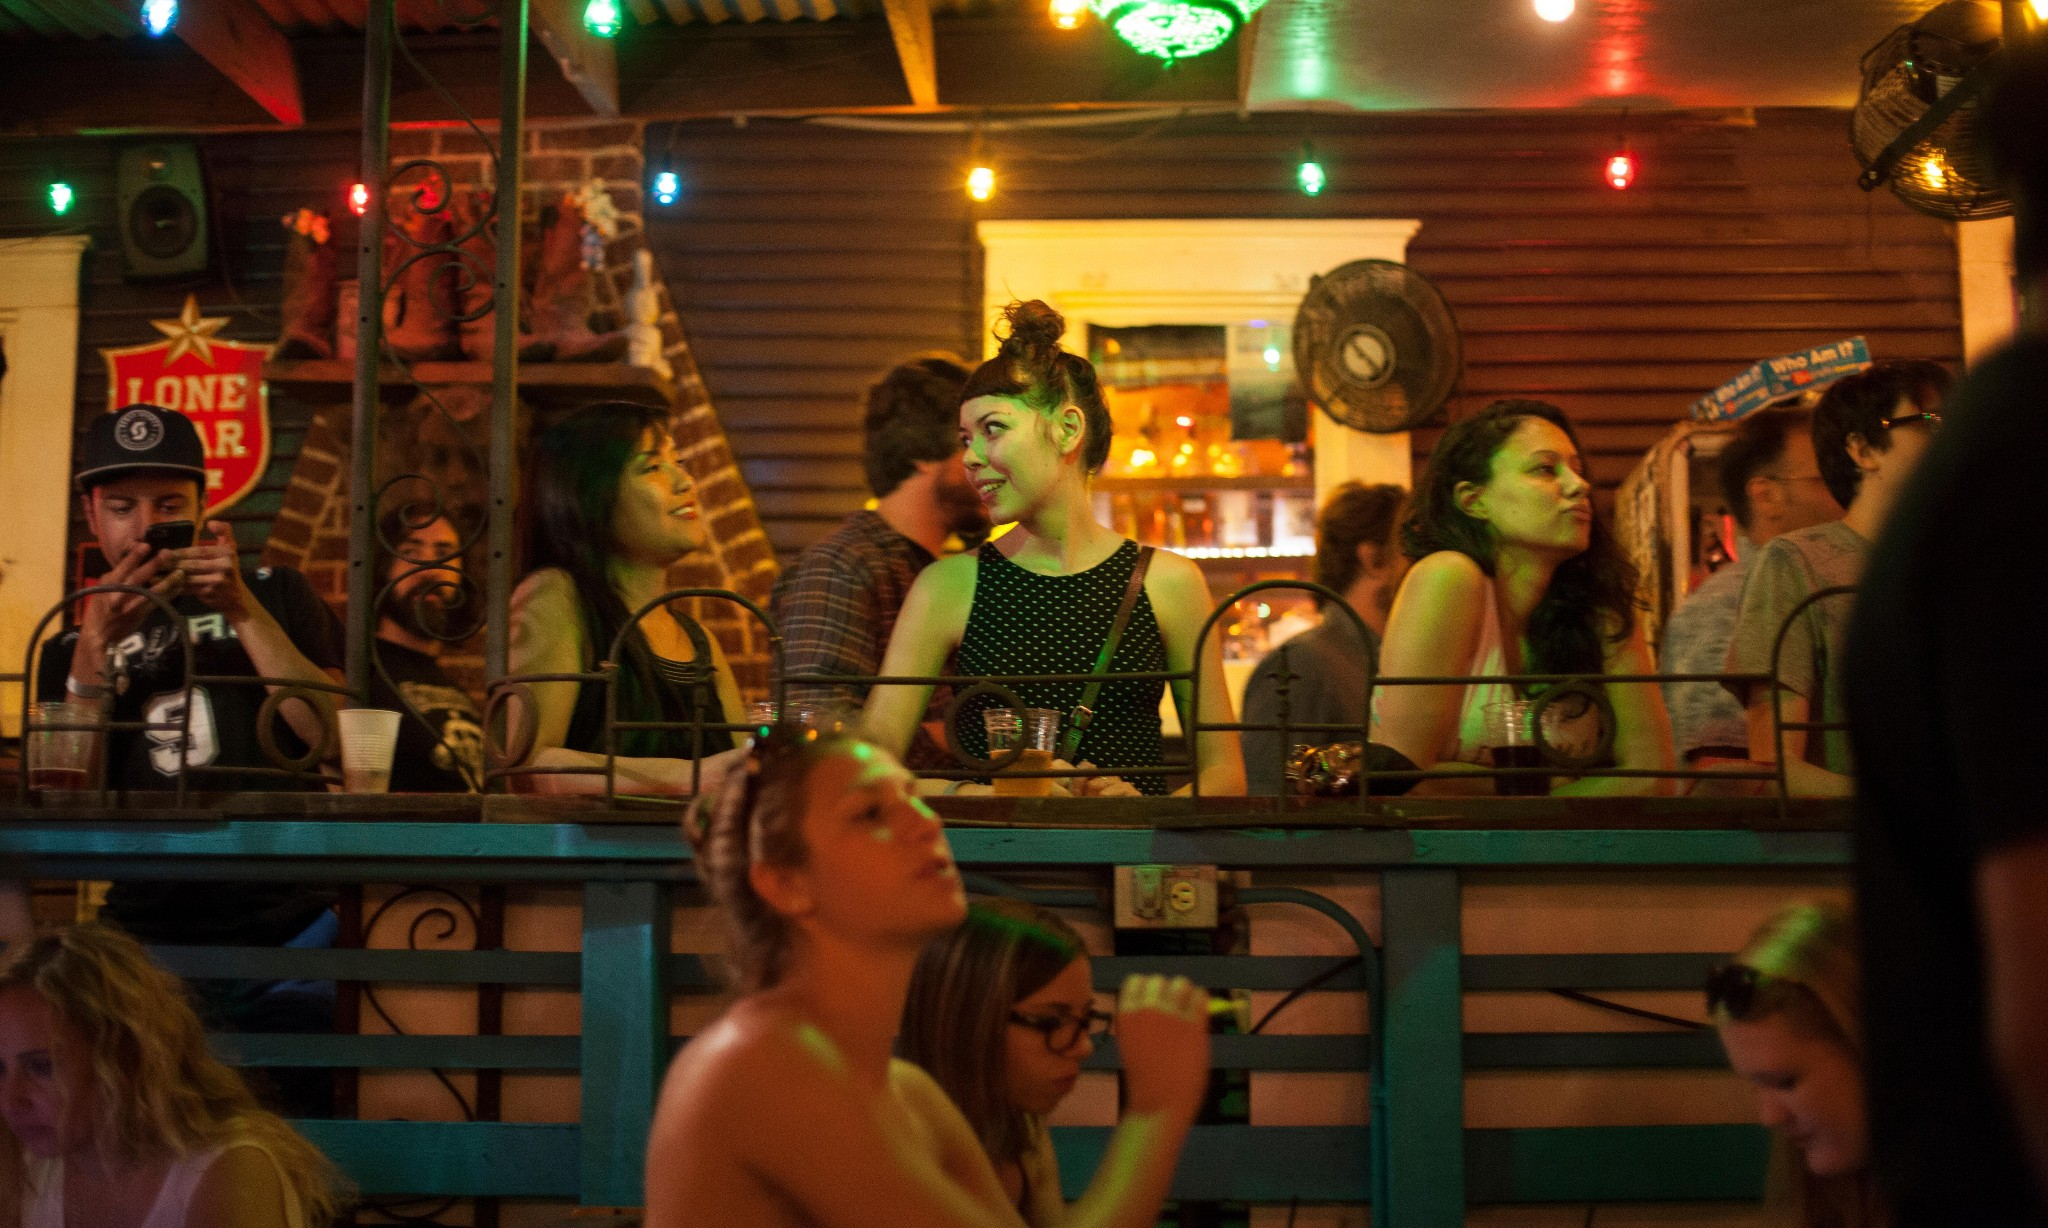 Google will now tell you whether a bar or shop is busy in real-time